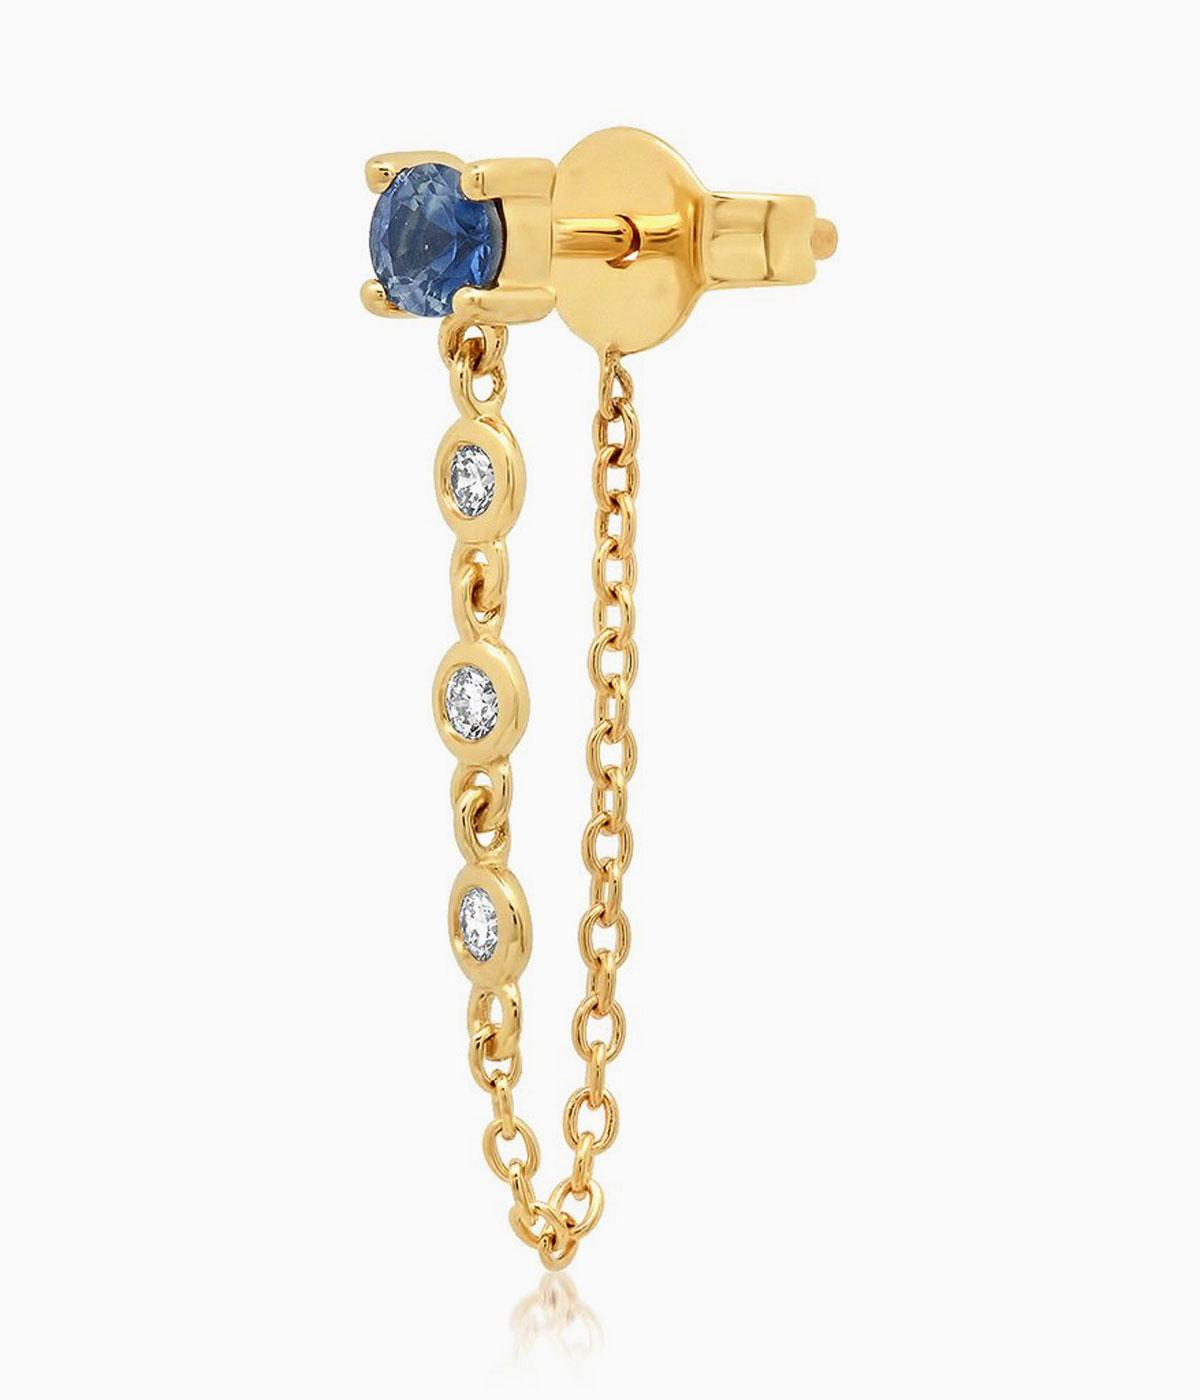 Gold earring with a sapphire stud and chain dangling down